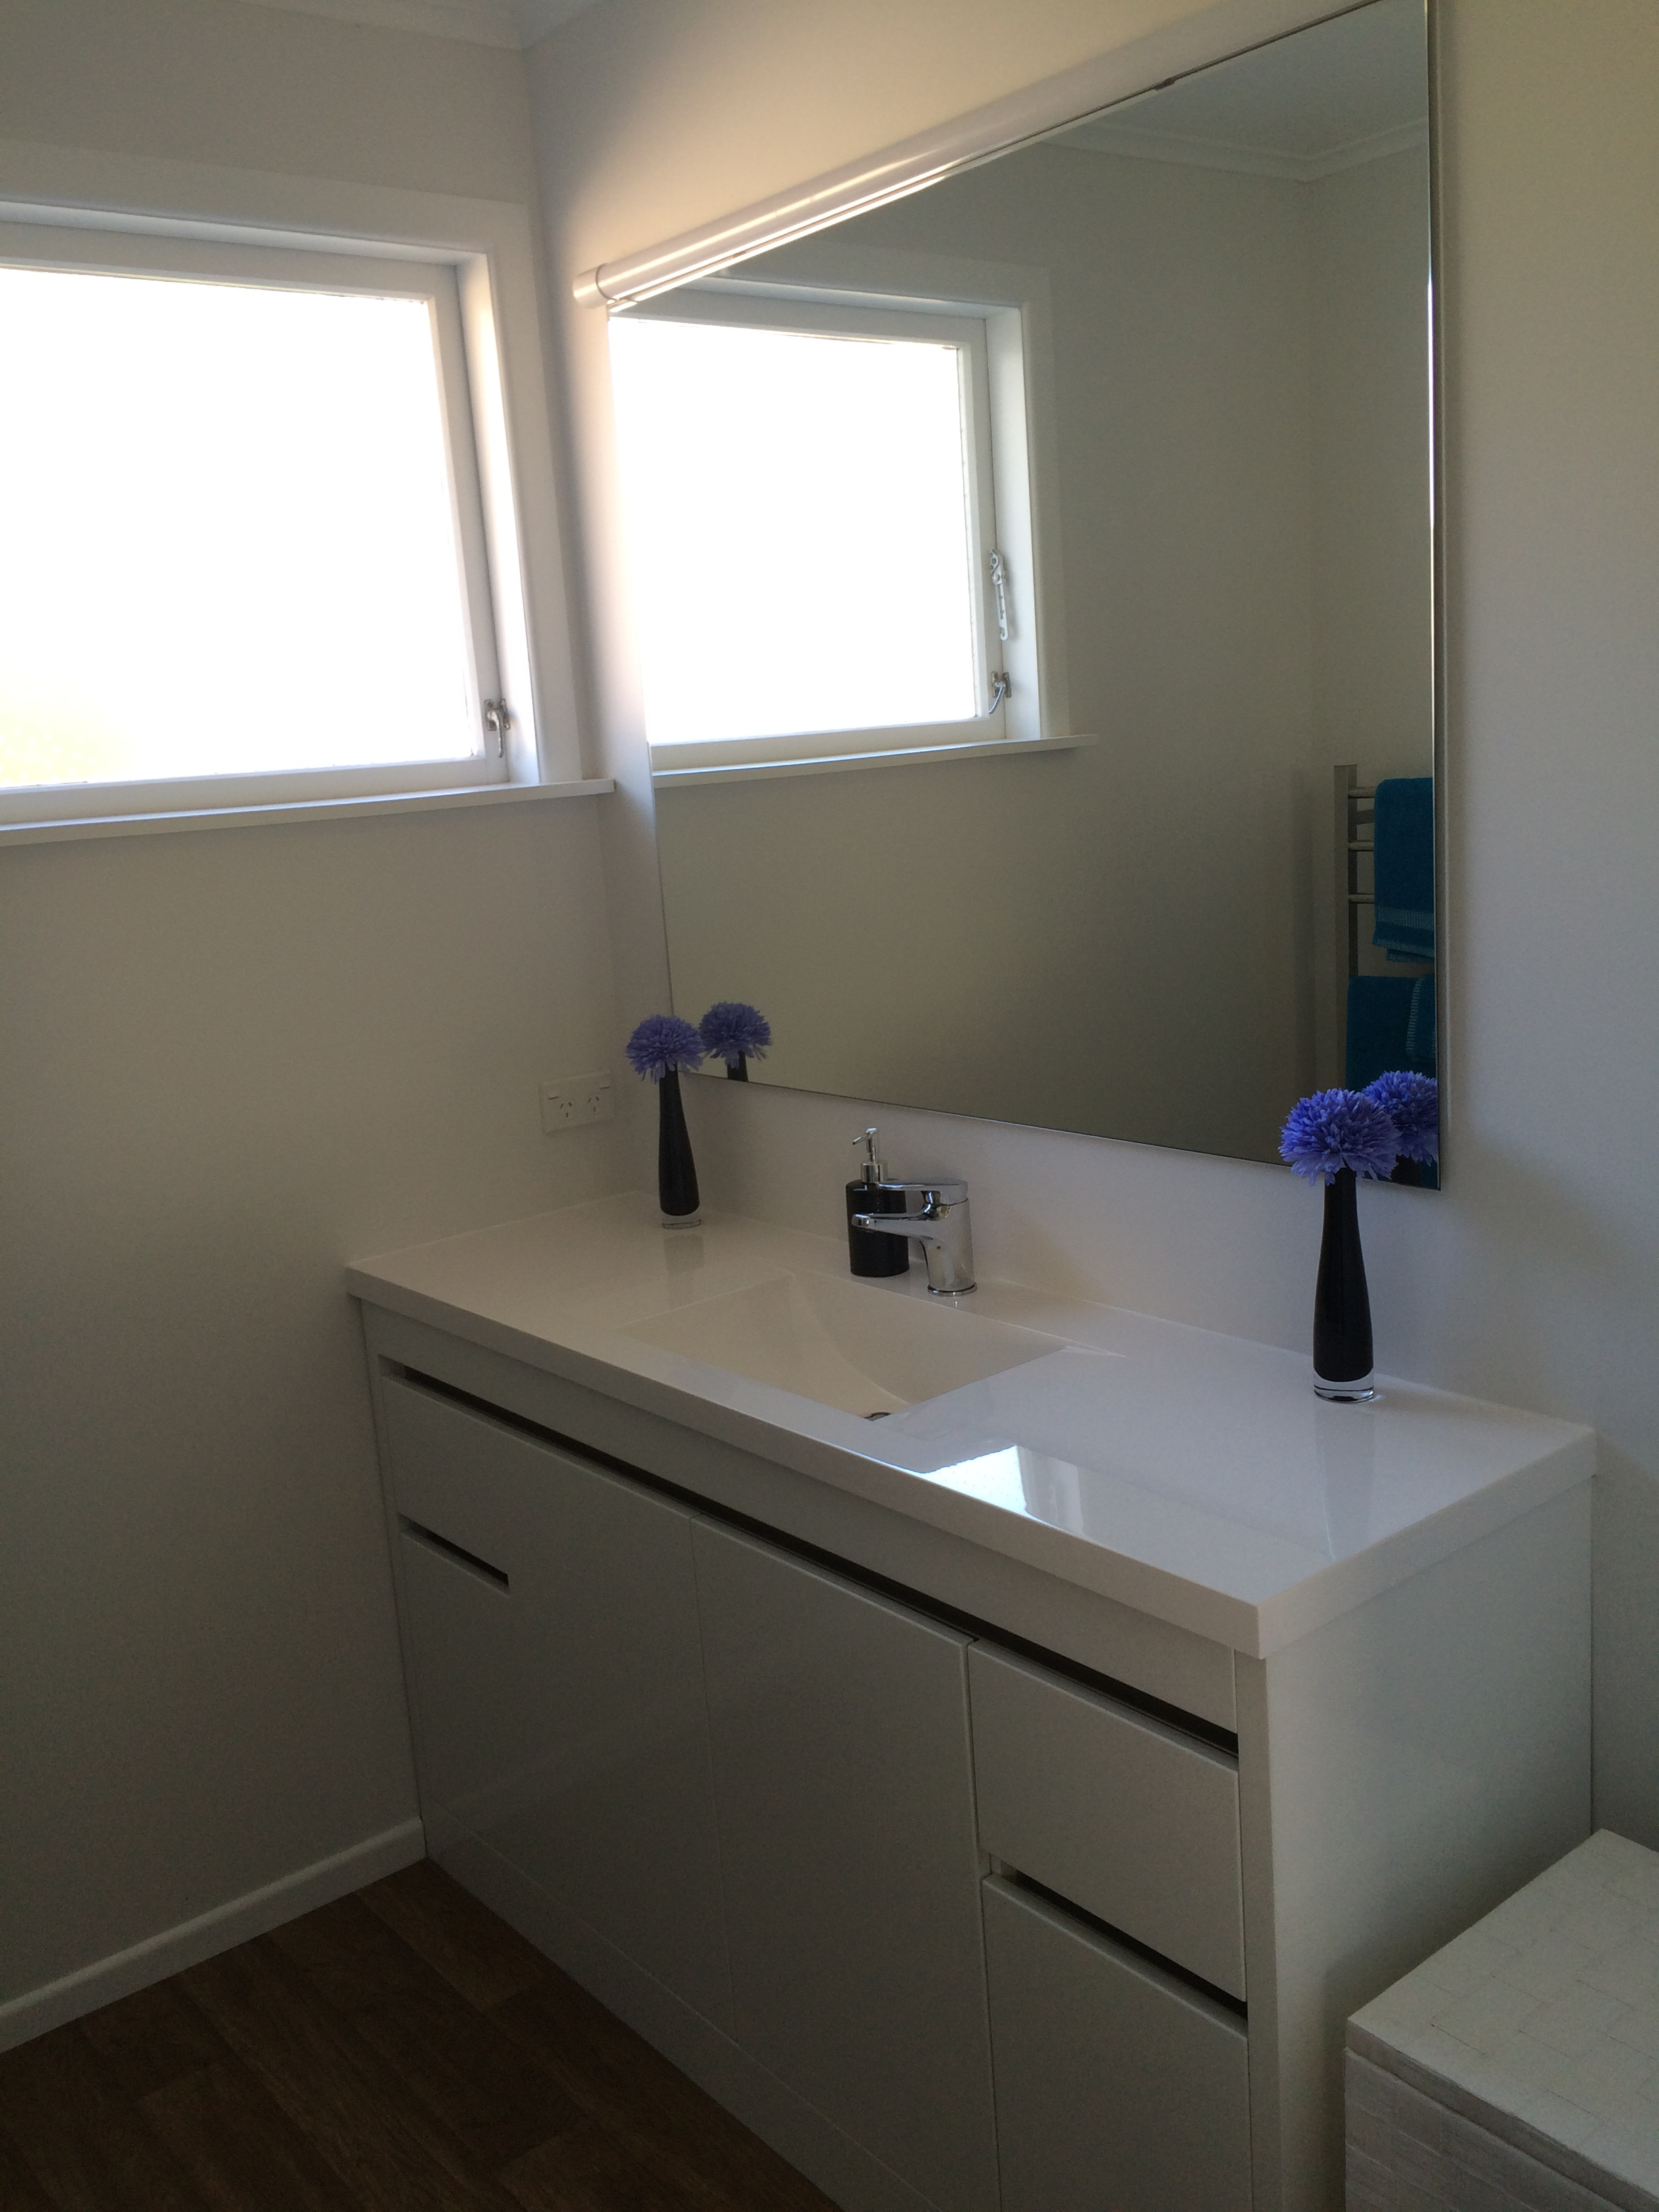 Bathrooms & Kitchens renovation in Blakeborough Drive, Forrest Hill